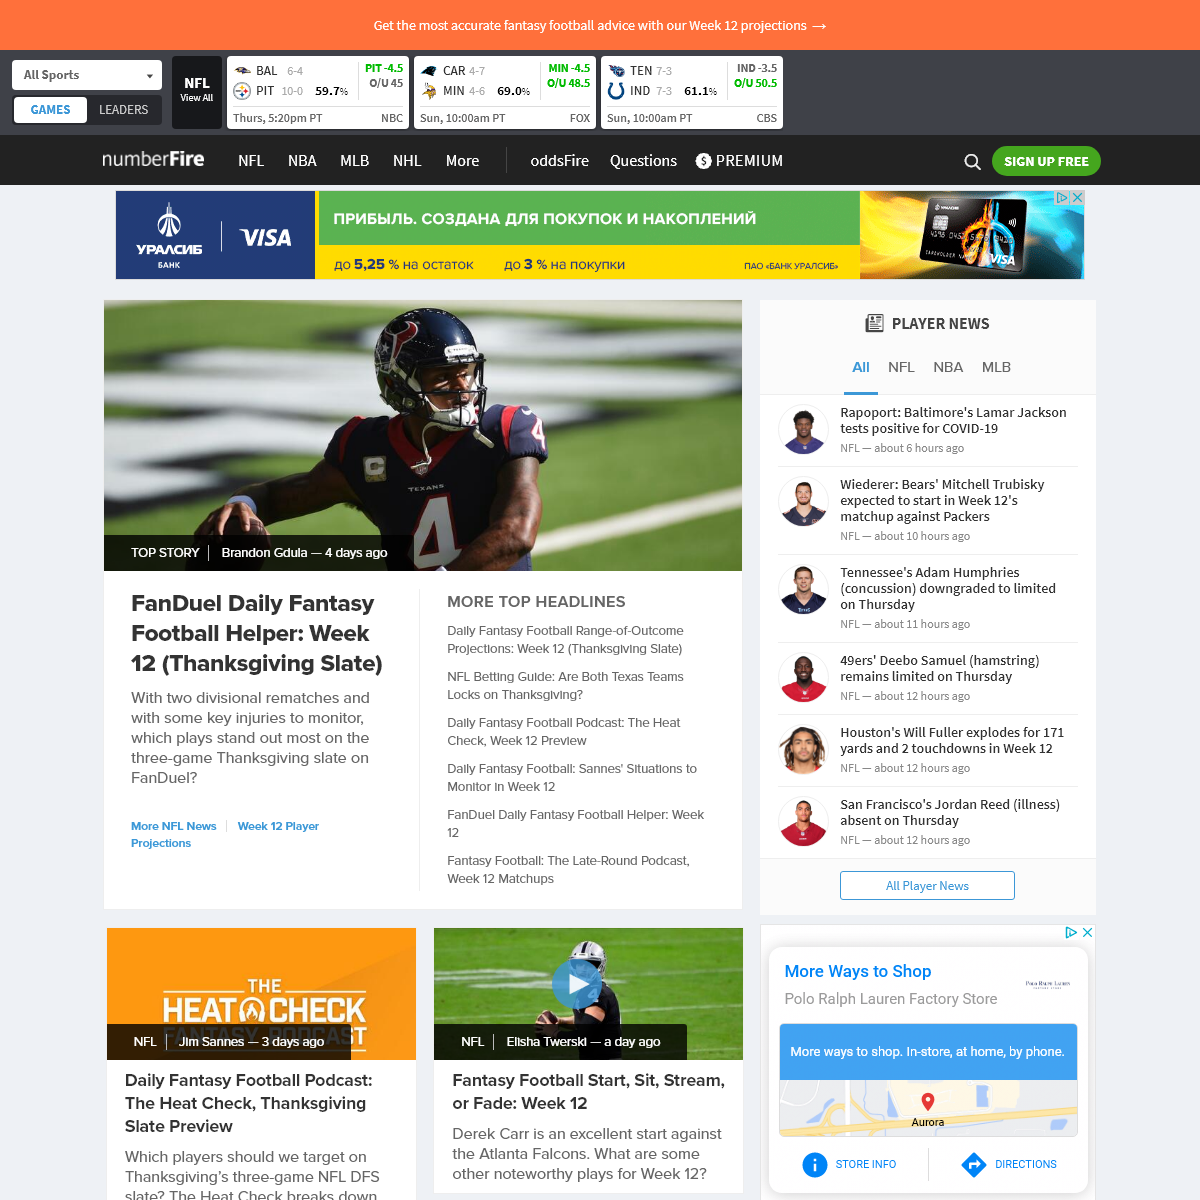 numberFire - Best Projections & Rankings for Daily Fantasy Sports